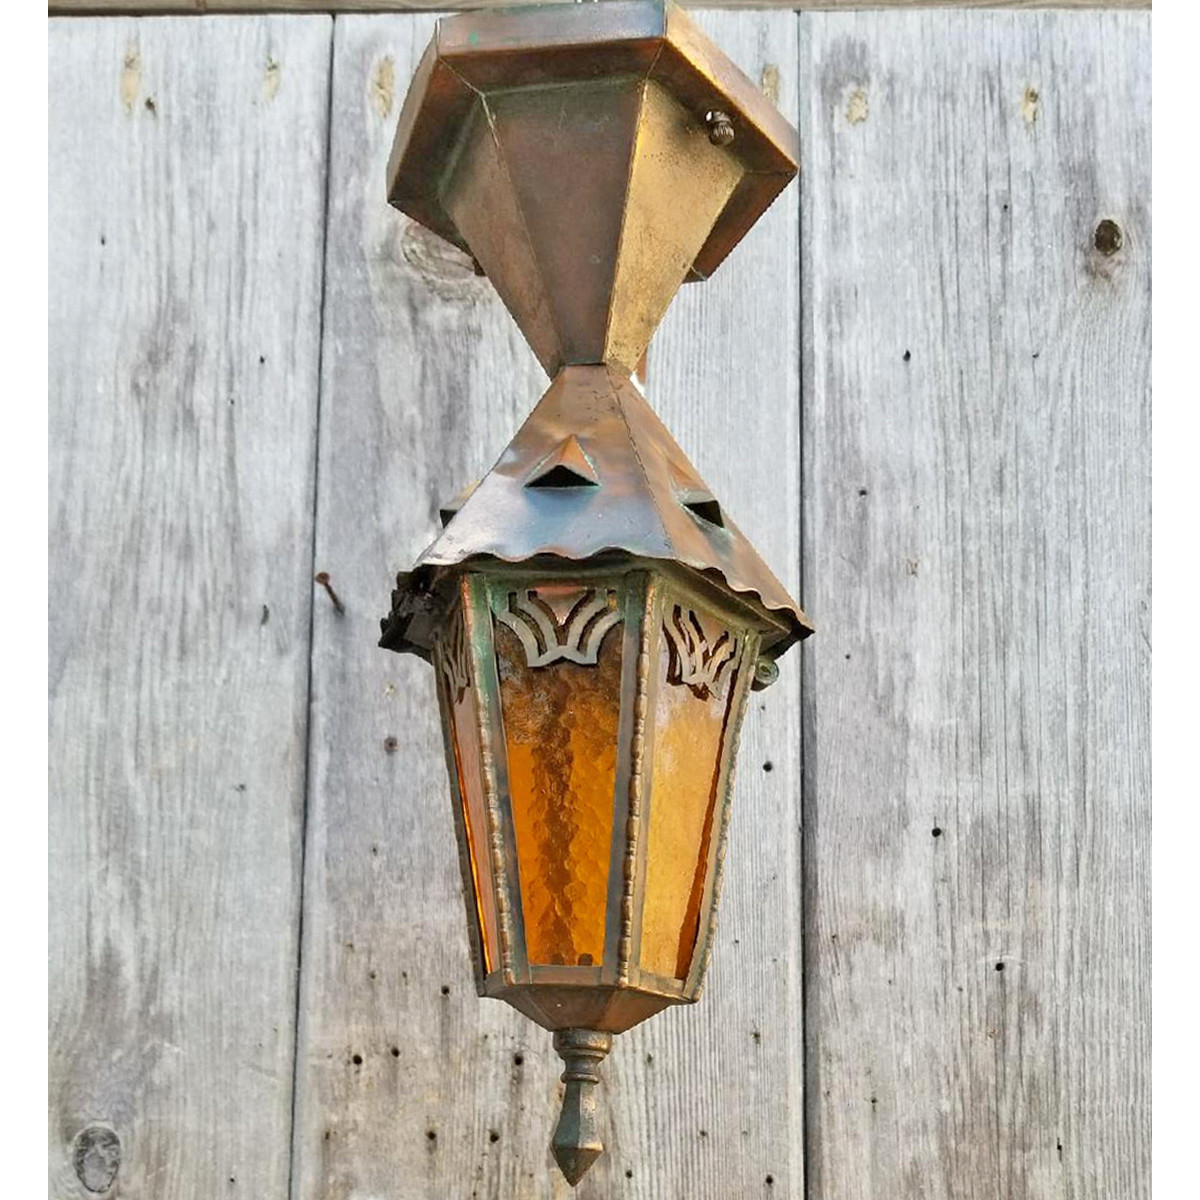 L18032 - Antique Arts & Crafts Porch Light